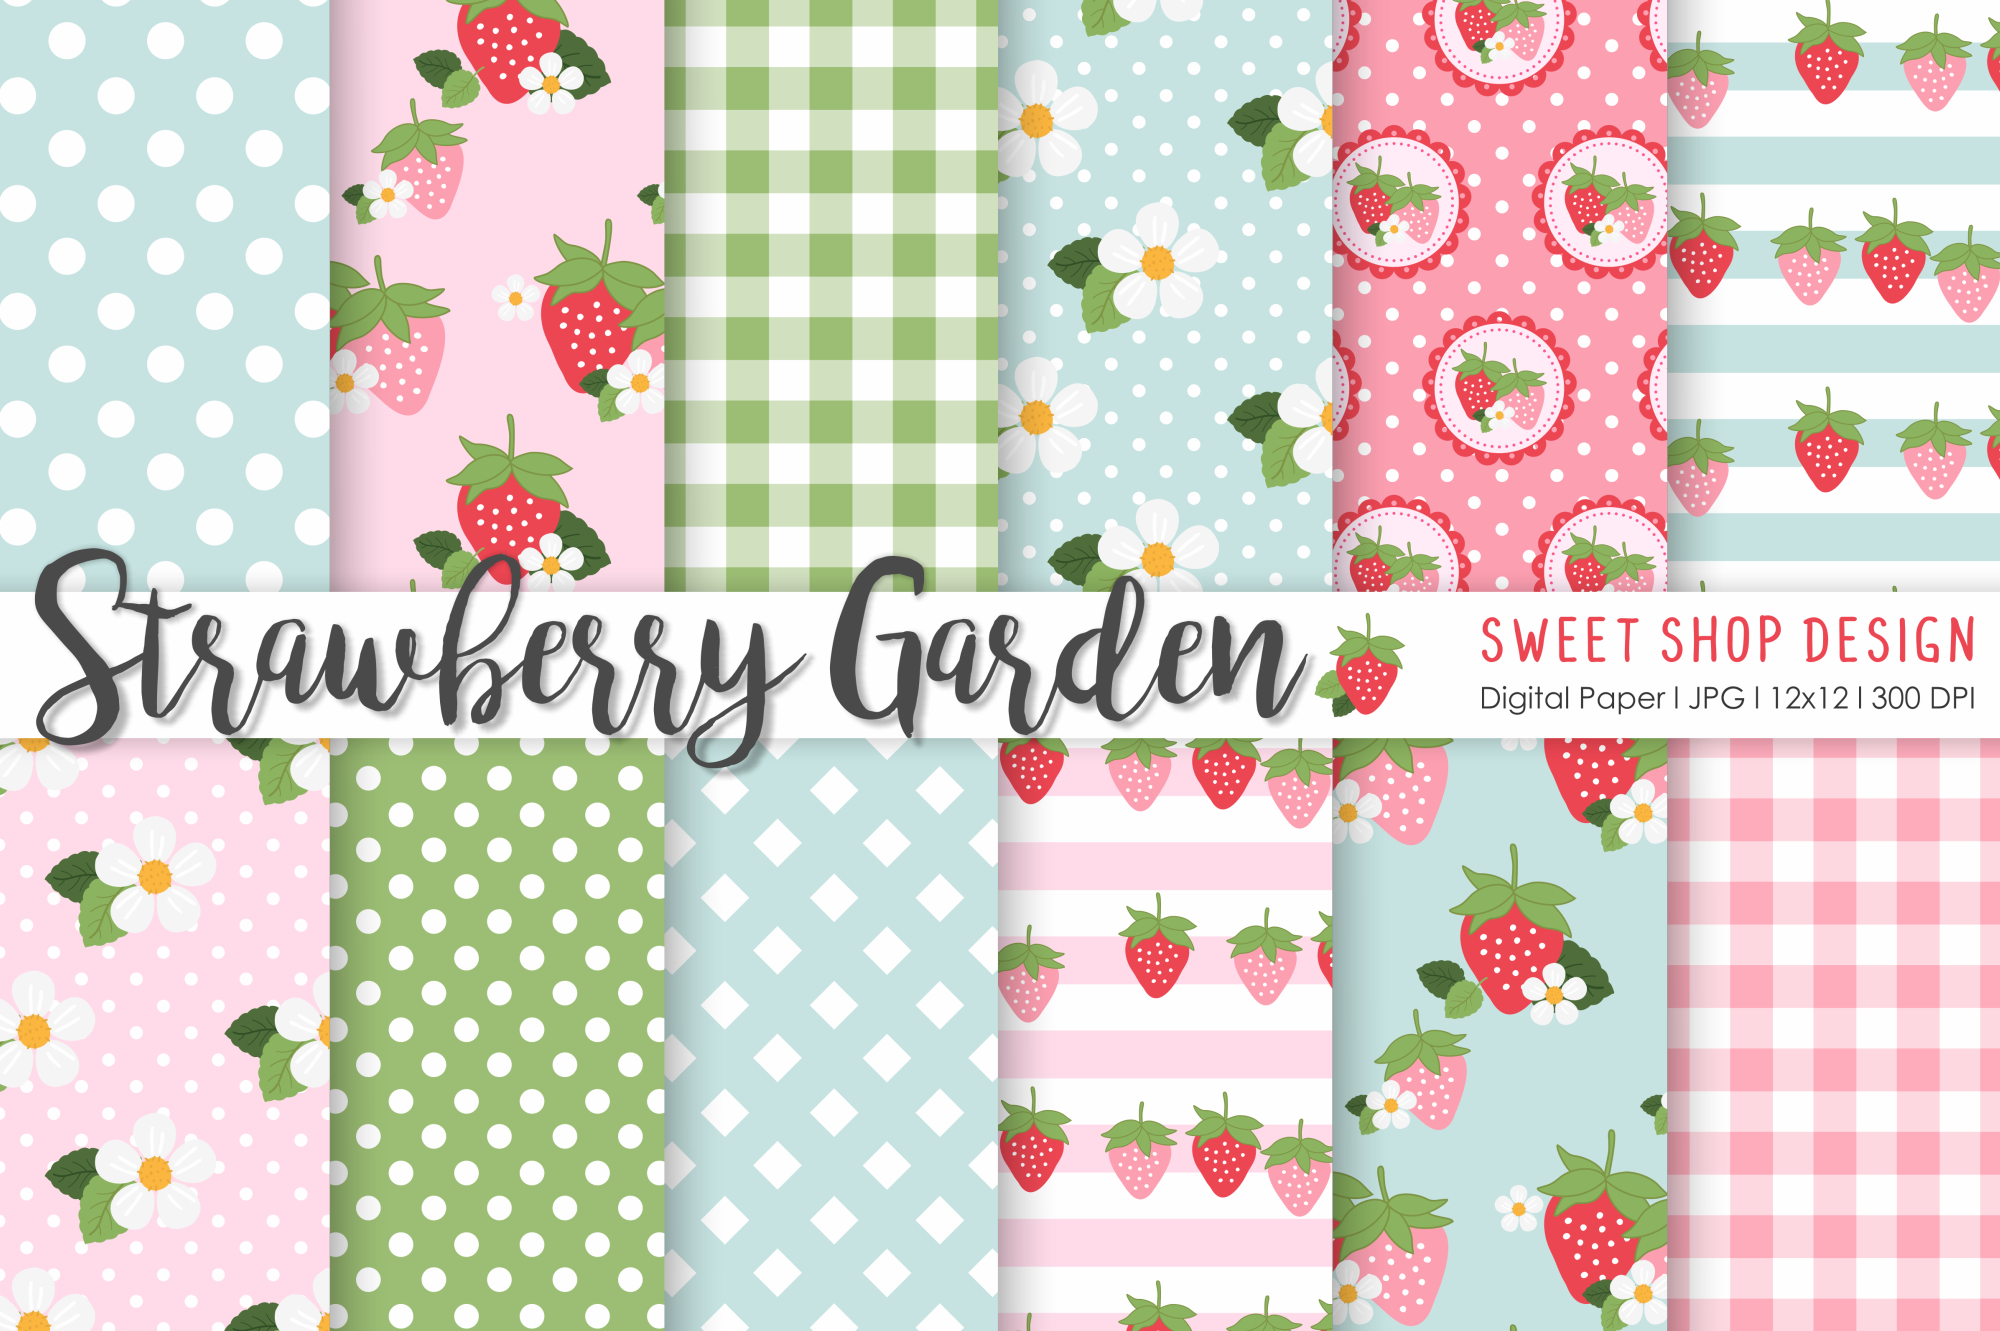 Download Free Digital Paper Strawberry Garden Graphic By Sweet Shop Design for Cricut Explore, Silhouette and other cutting machines.